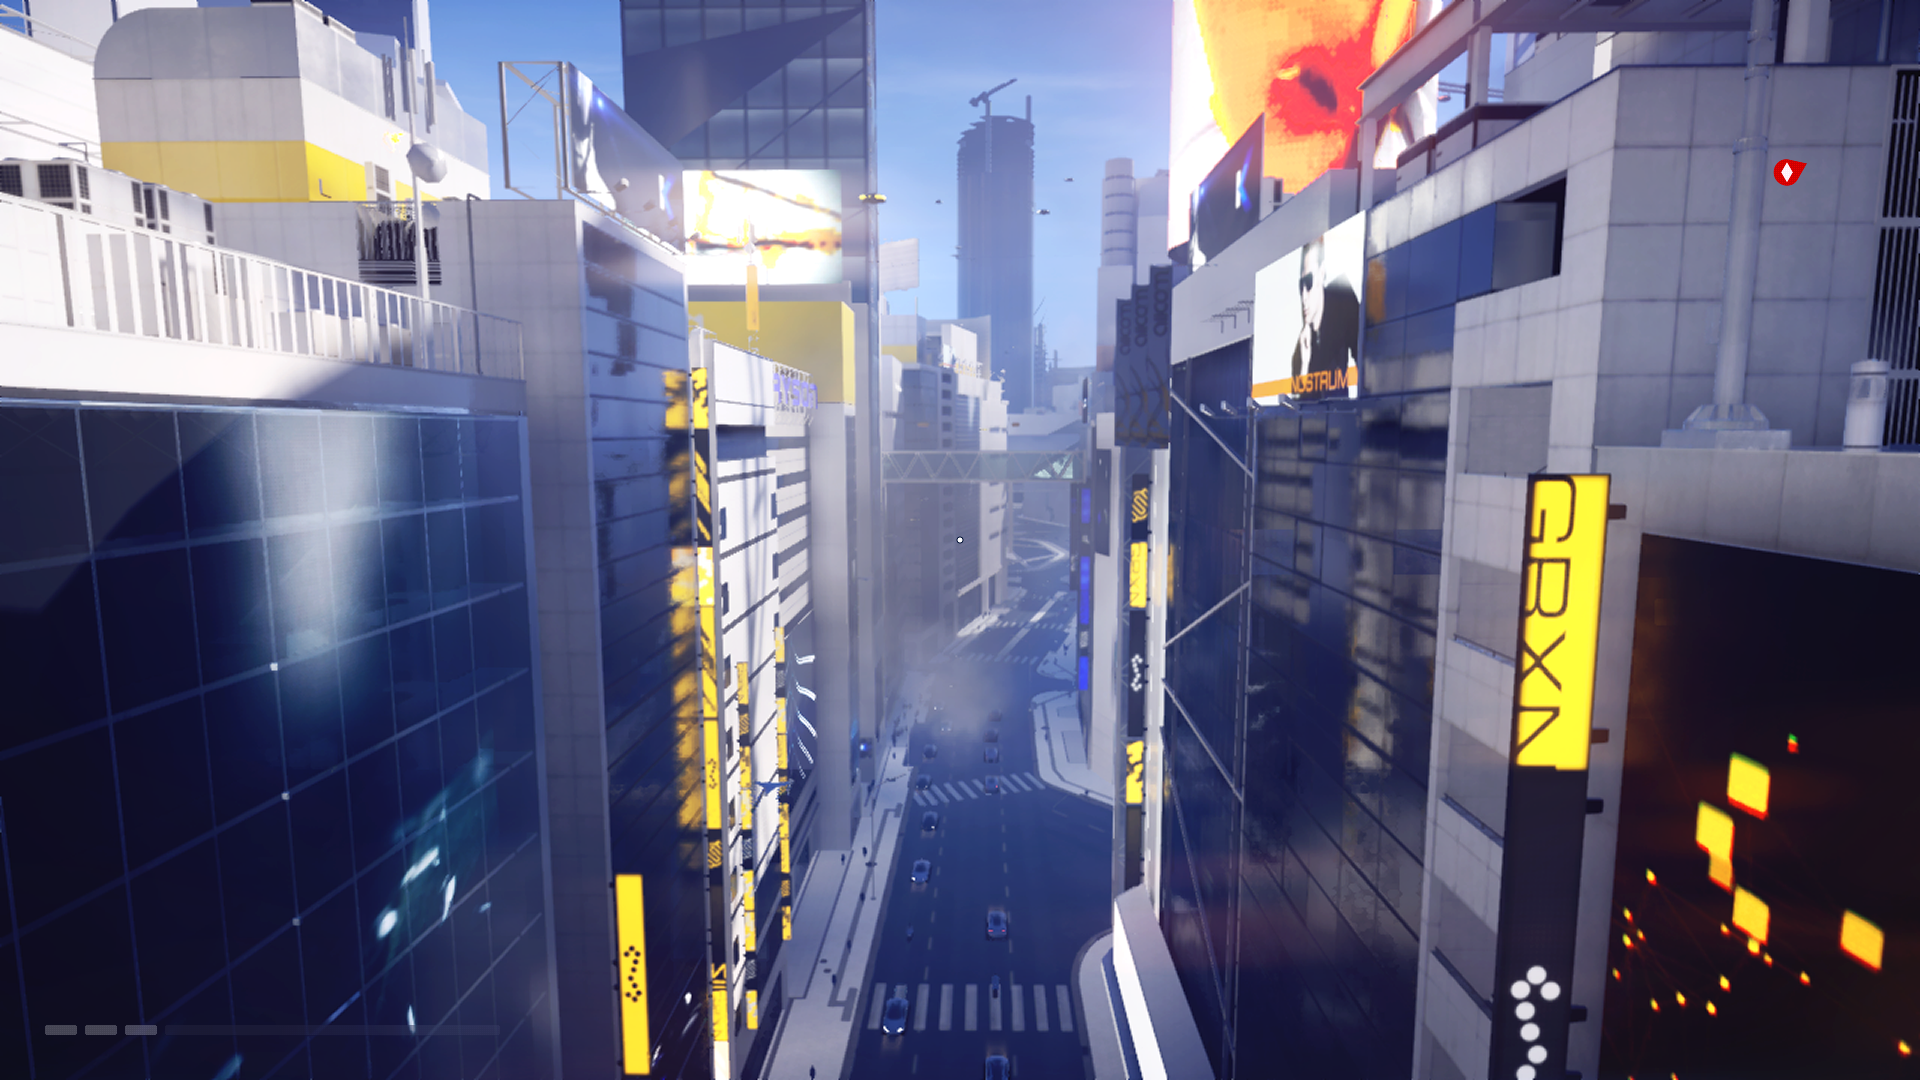 Mirror's Edge Catalyst Review Image 1